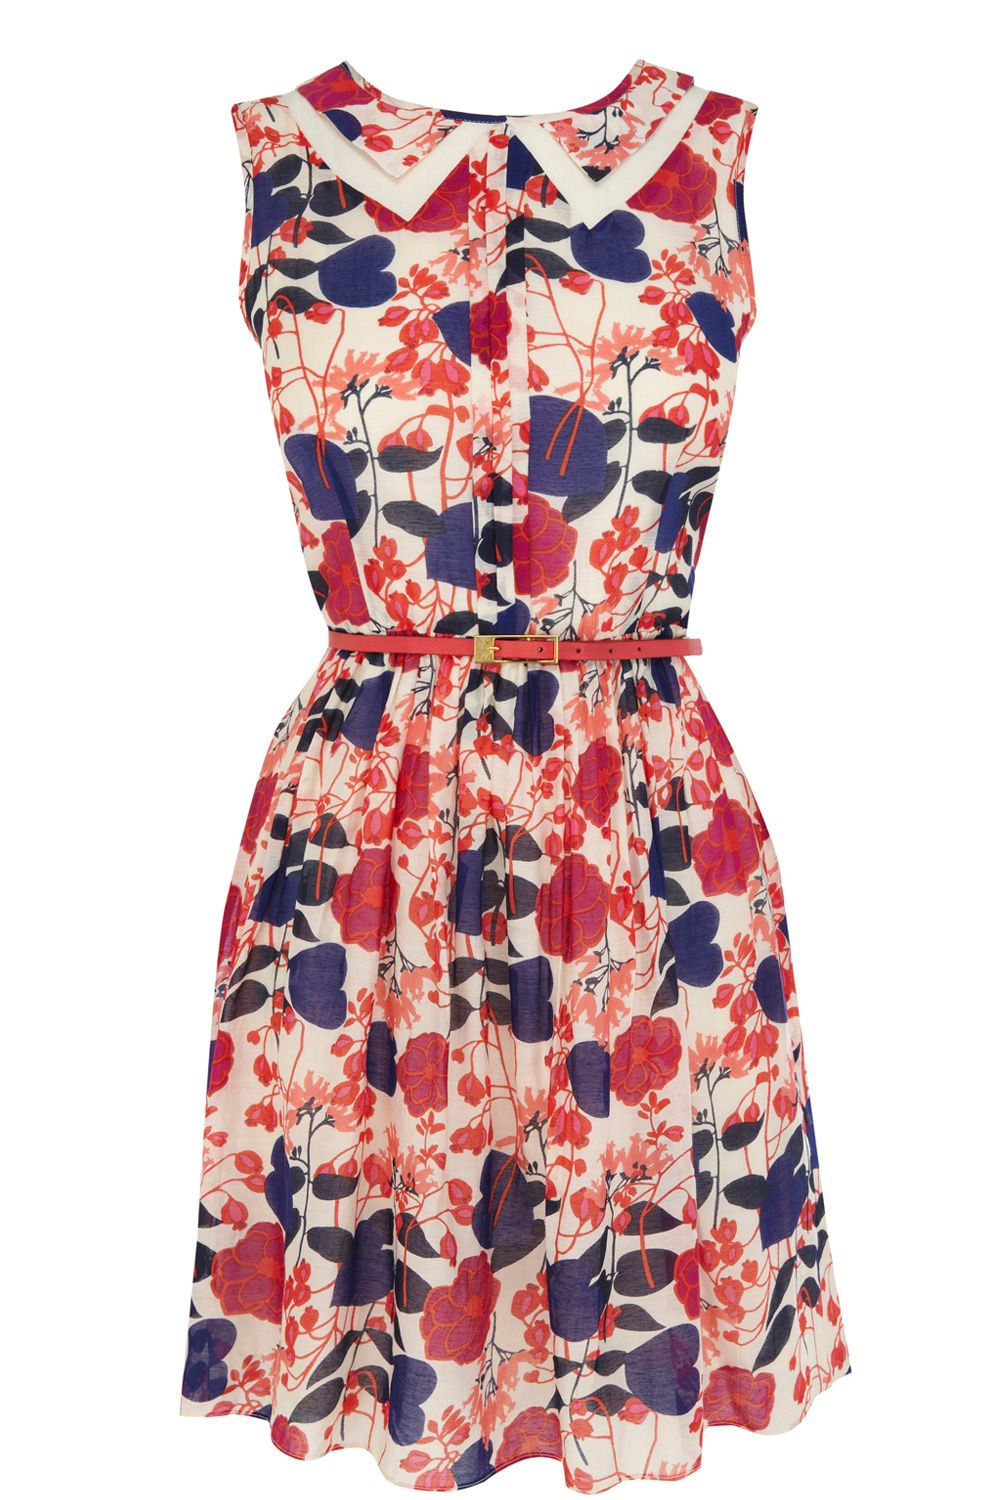 Shadow floral sundress